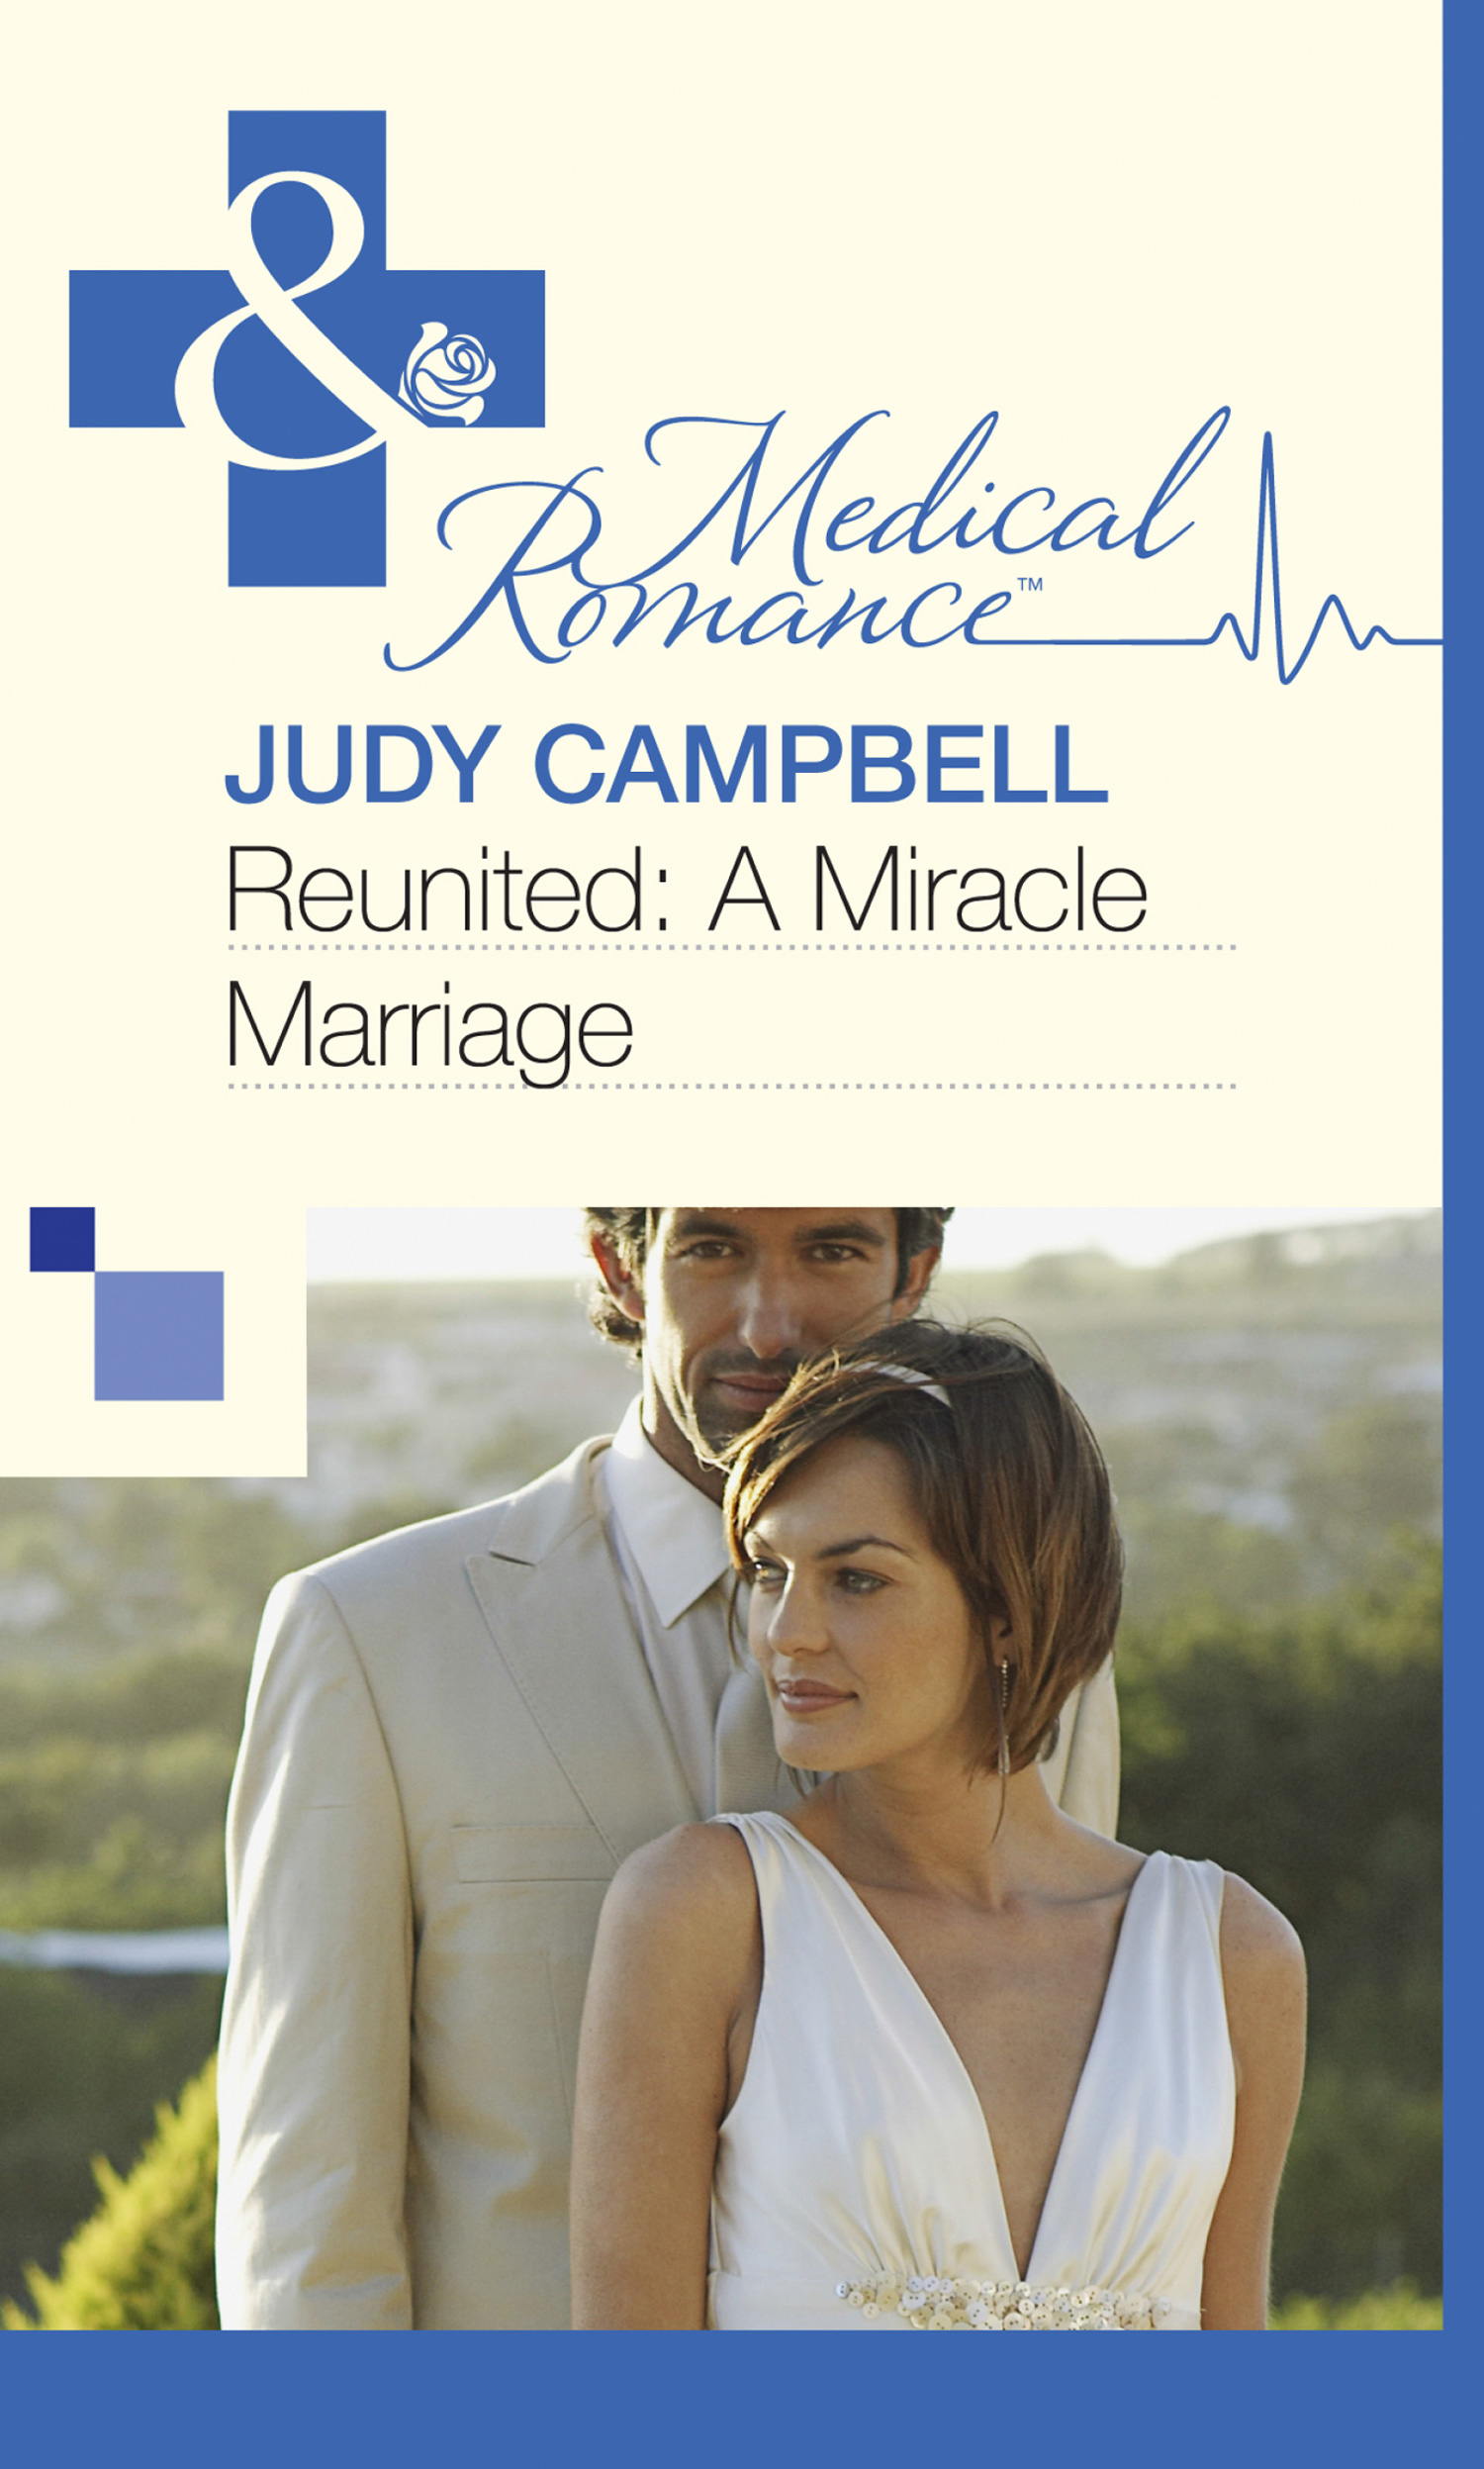 Reunited: A Miracle Marriage